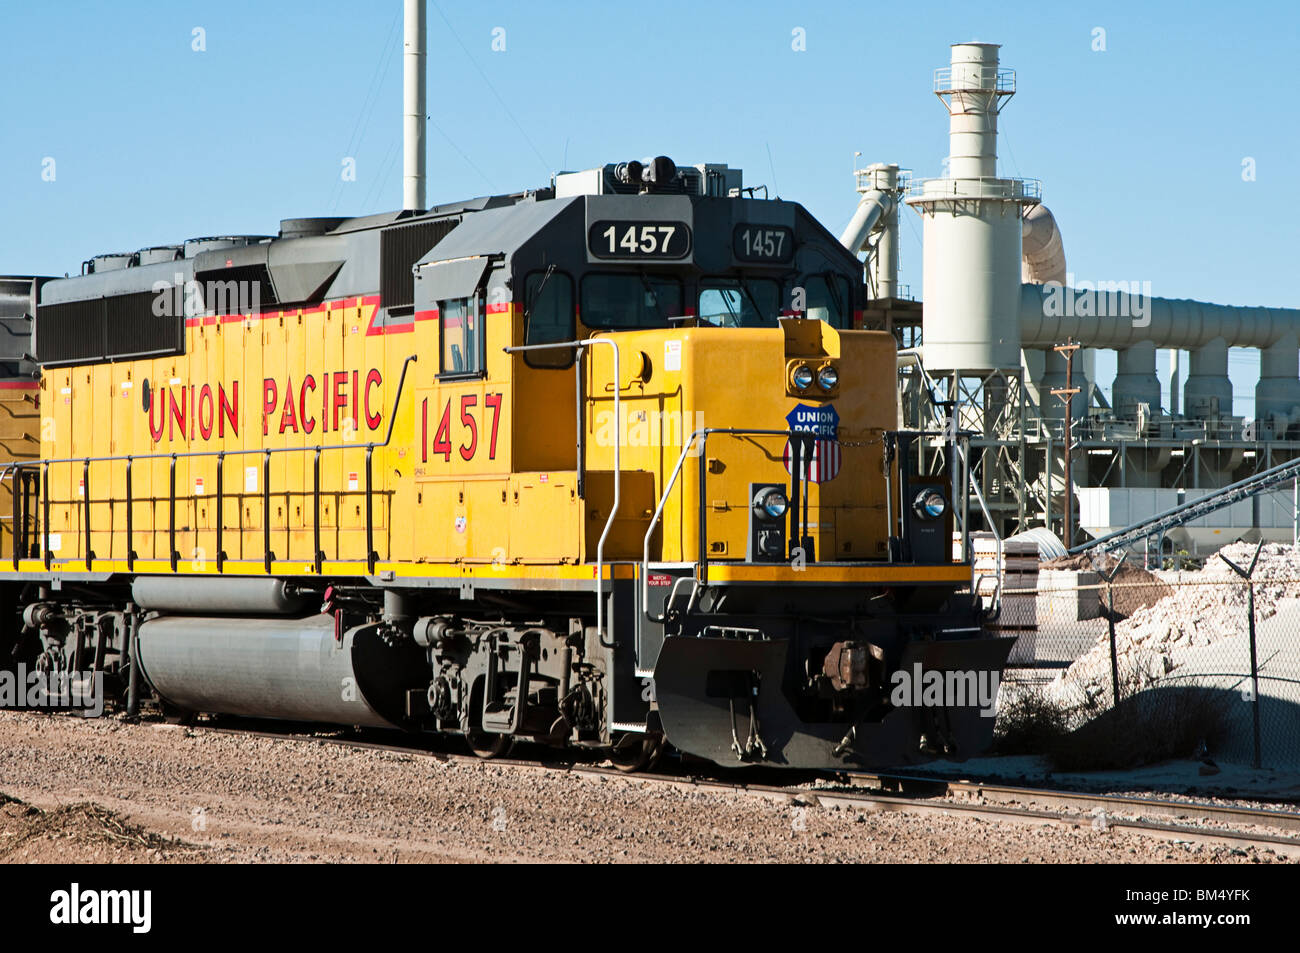 locomotive engines parked on a rail siding - Stock Image